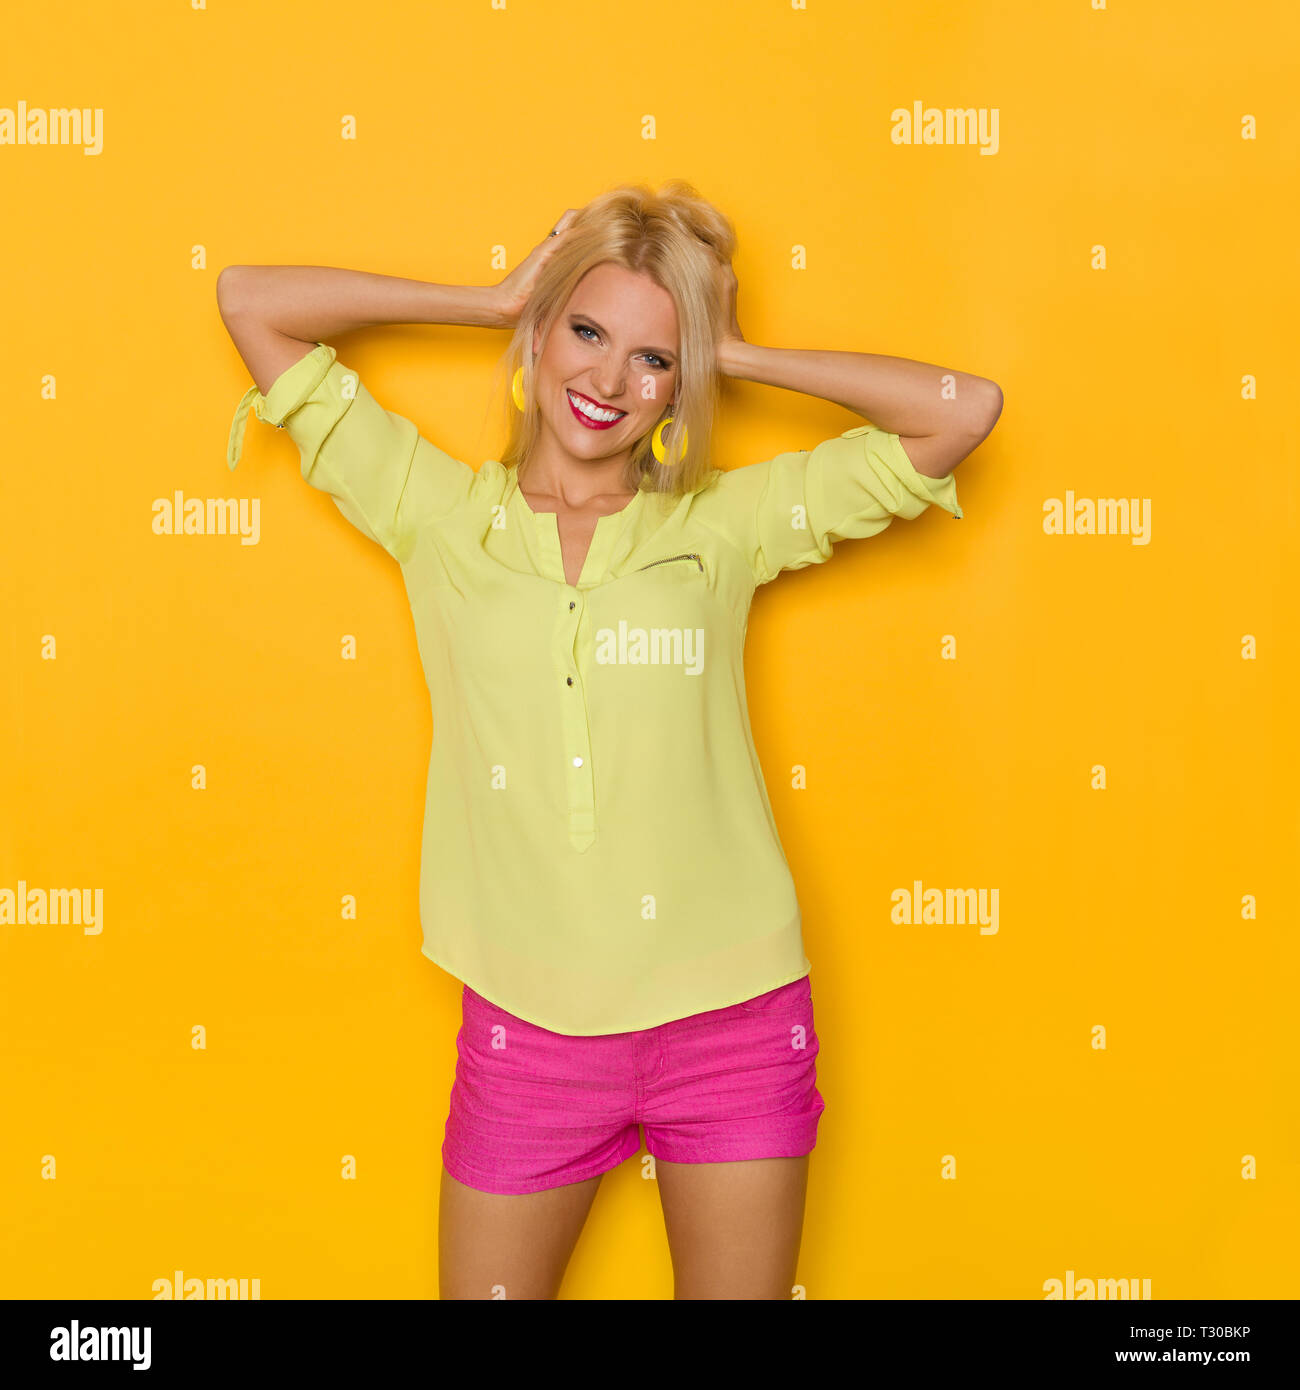 Cute blond young woman in yellow shirt and pink shorts is holding head in hands and smiling. Three quarter length studio shot on yellow background. - Stock Image